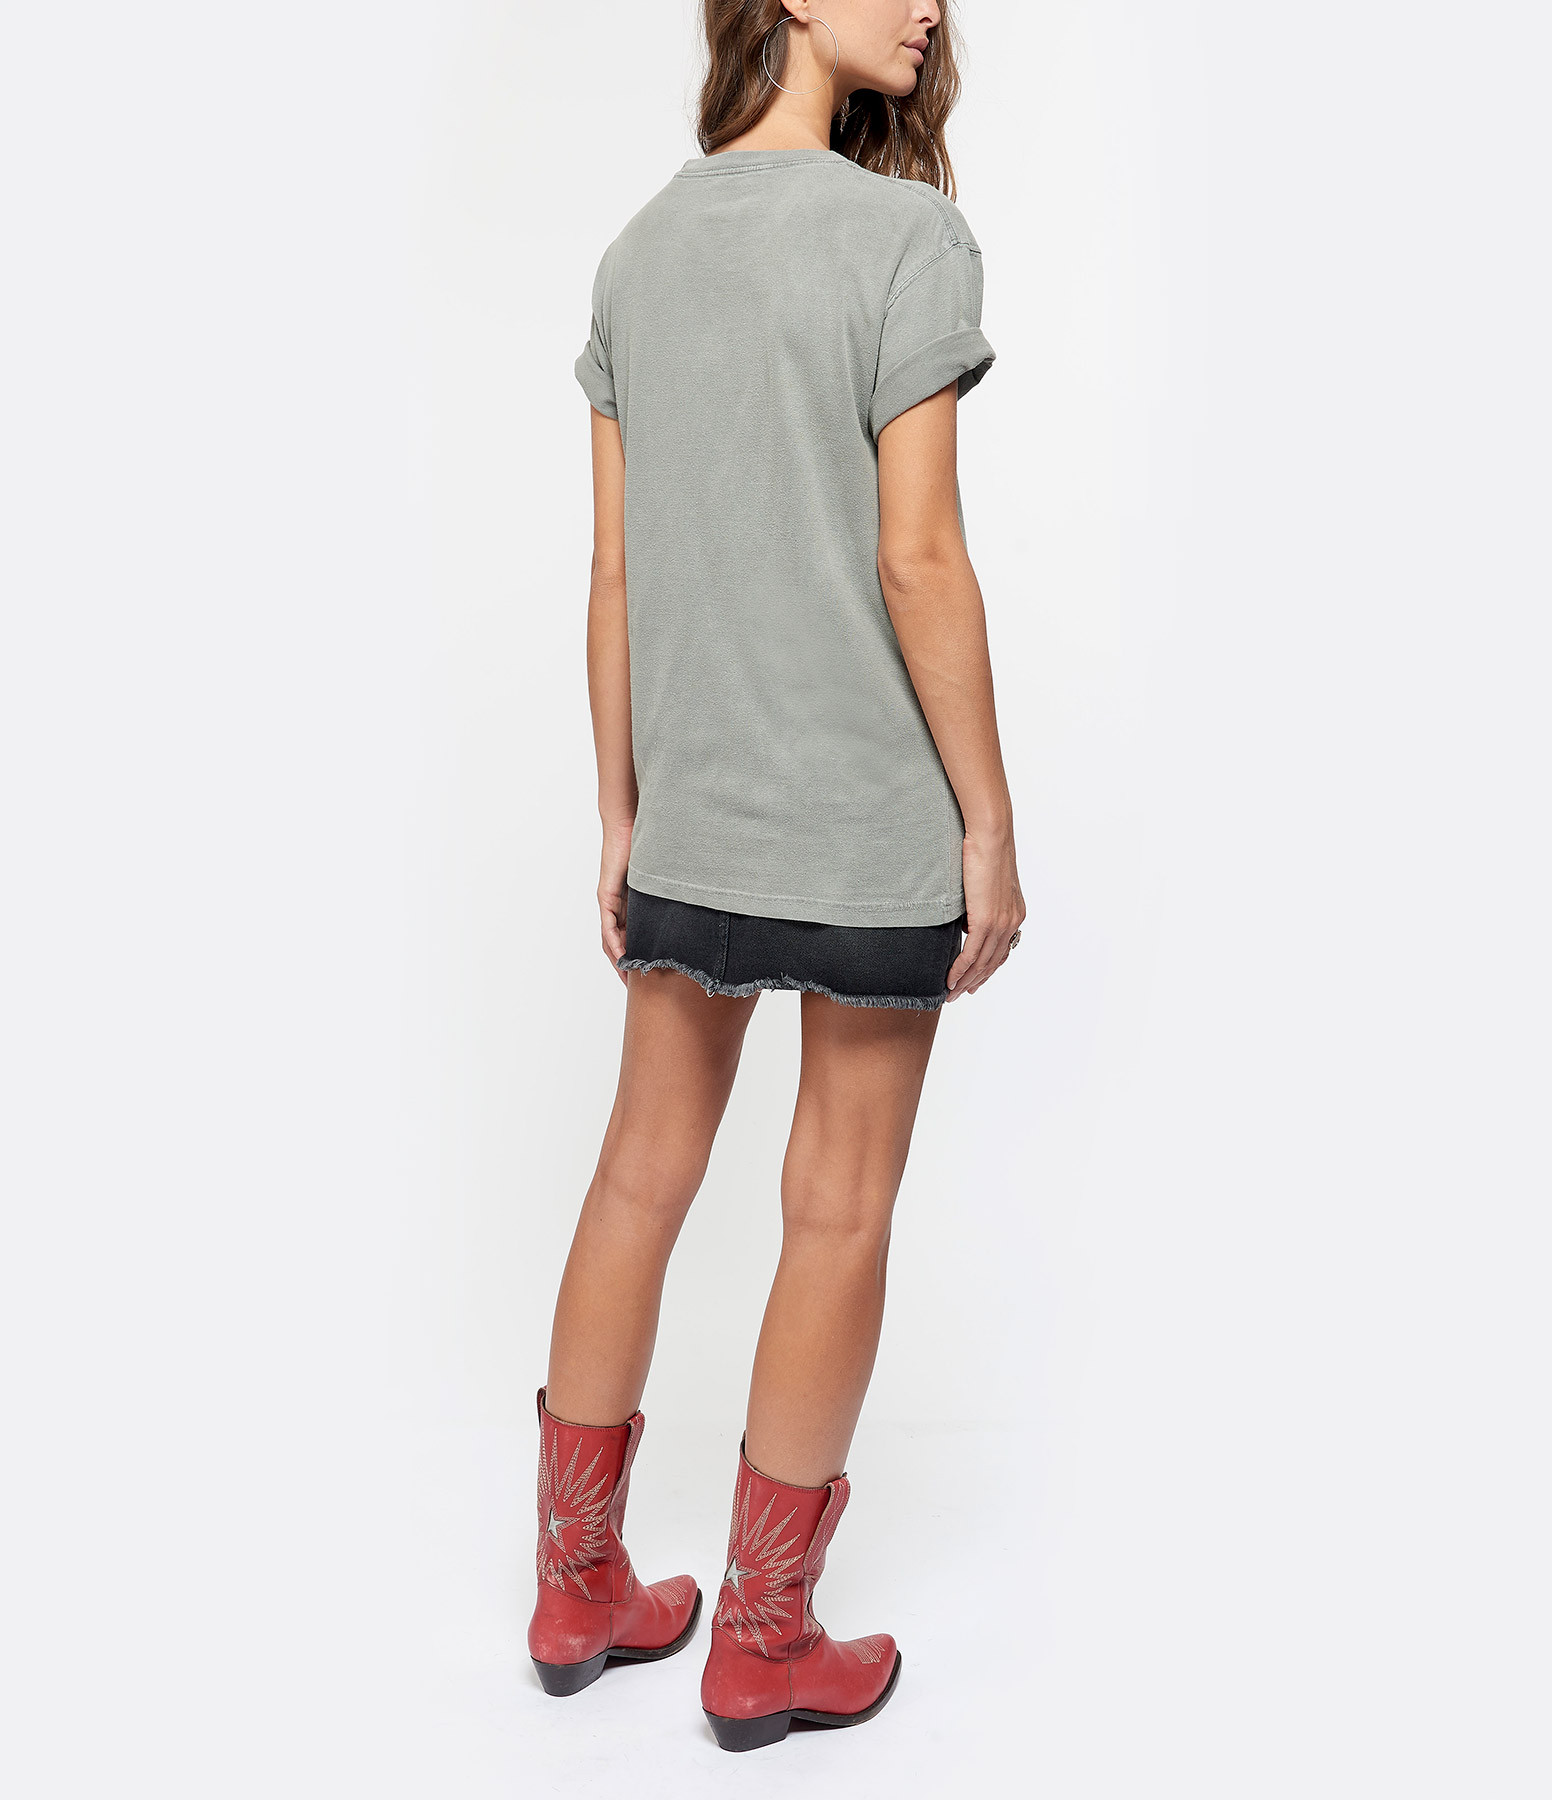 NEWTONE - Tee-shirt Spicy Coton Gris